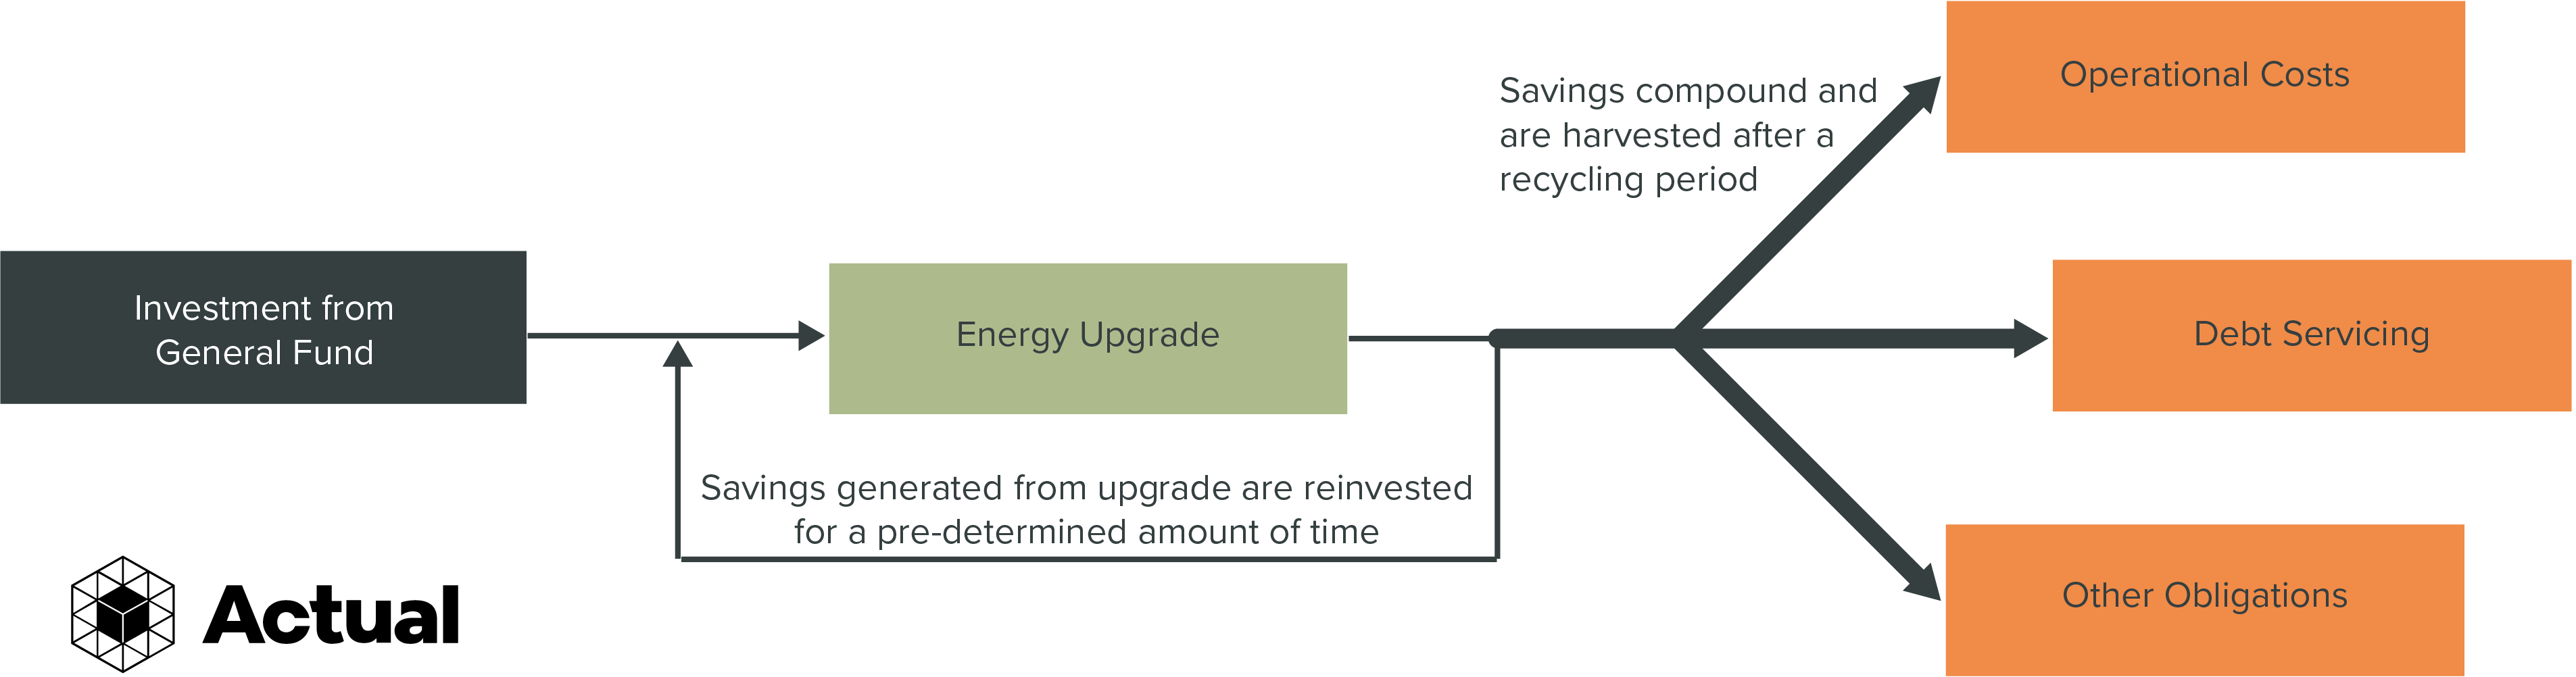 A flowchart which shows how Savings Recycling works. At the left is a block showing the general fund. An arrow connects it to a second block, the energy upgrade. An arrow from the right side of the energy upgrade loops back to the energy upgrade, showing that money saved by making things more efficient can be used to make even more upgrades. At the right, there is a bold line which branches into three lines, showing that harvested money can be spent on operational costs, debts, and other obligations.